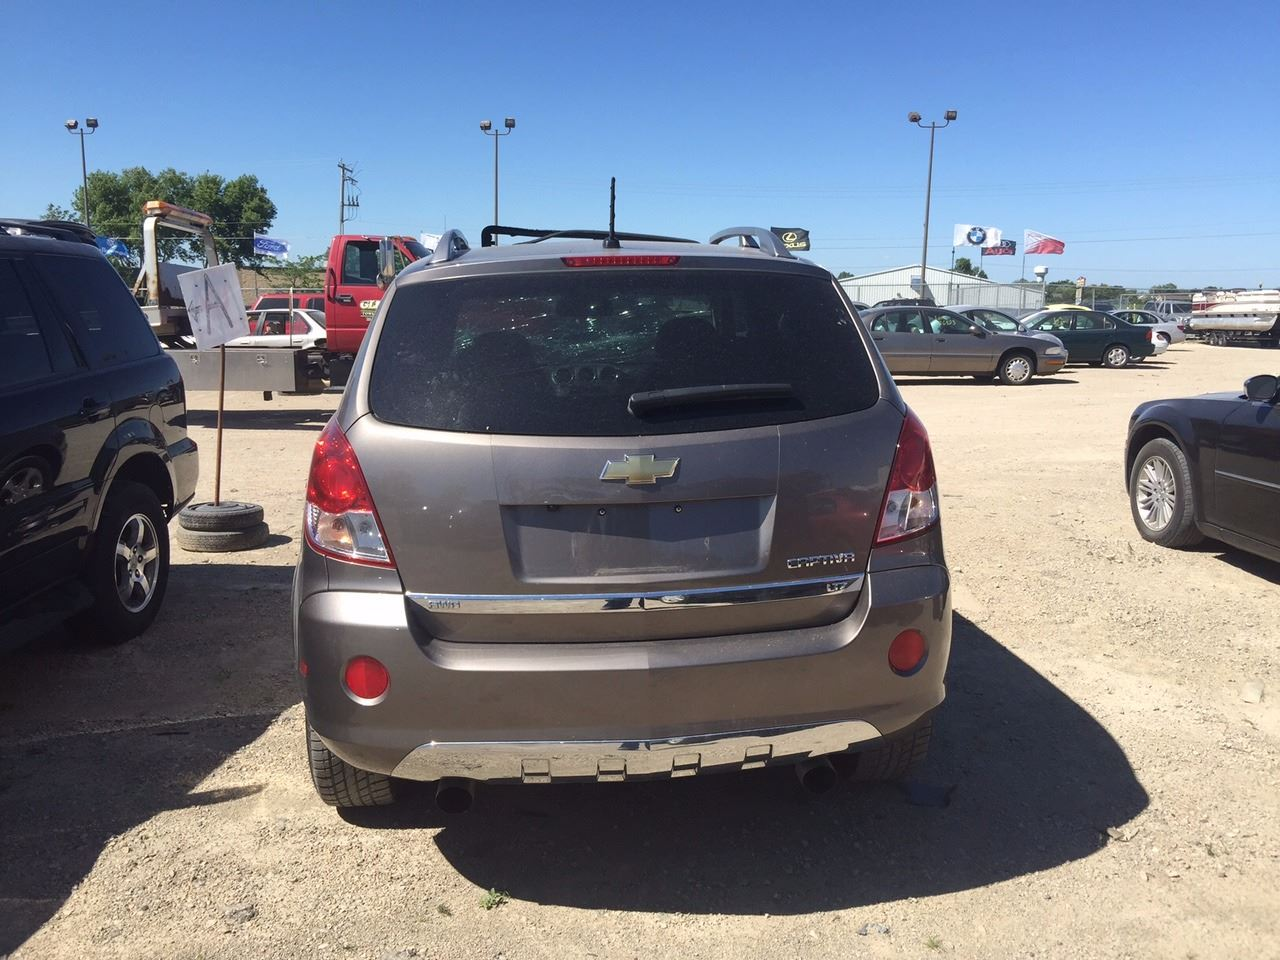 All Chevy chevy captiva awd : 2012 Chevrolet Captiva Sport AWD LTZ 4dr SUV In Weston WI ...